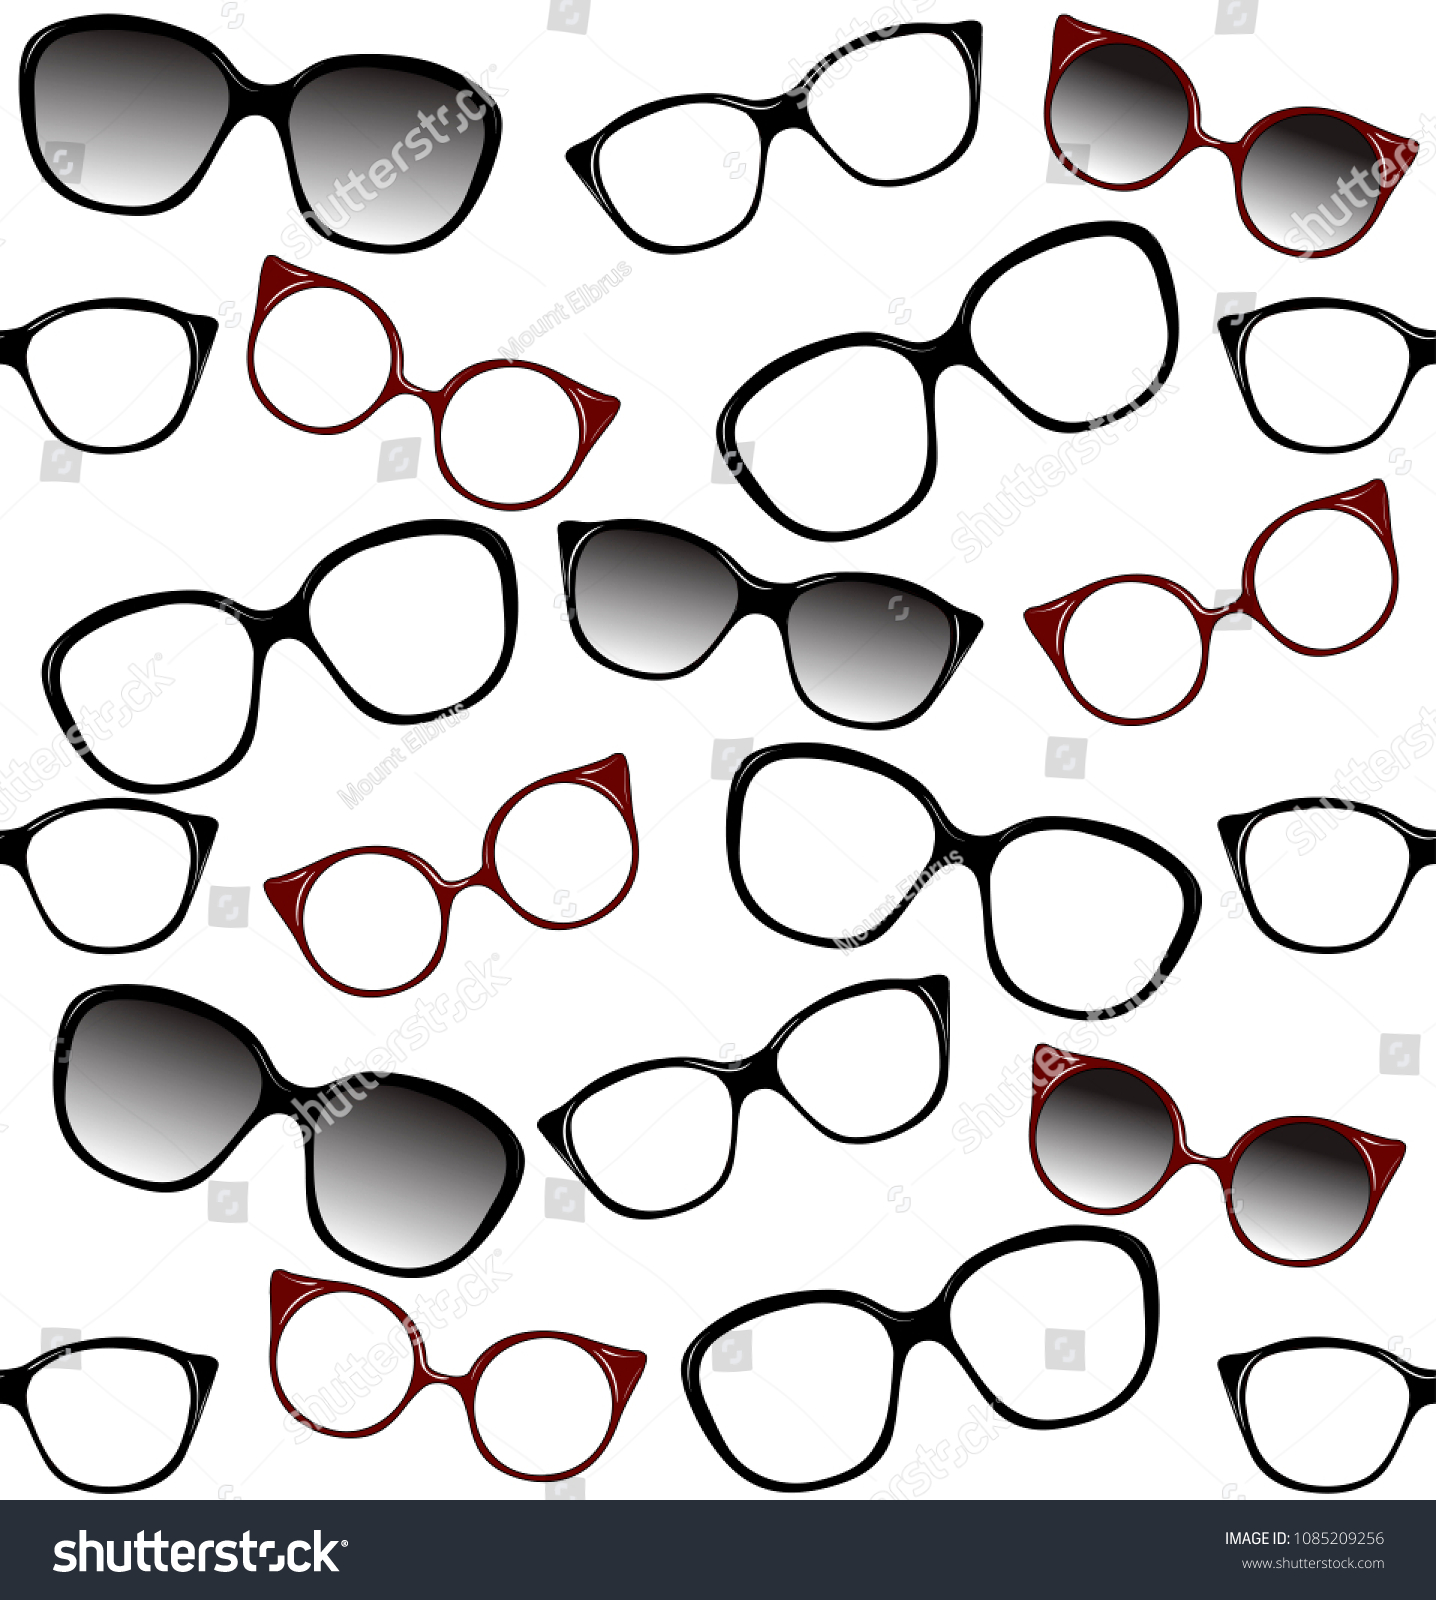 67f1ca4b3a Stock vector seamless pattern of spectacle frames vector illustration of  fashion glasses decorative background jpg 1436x1600